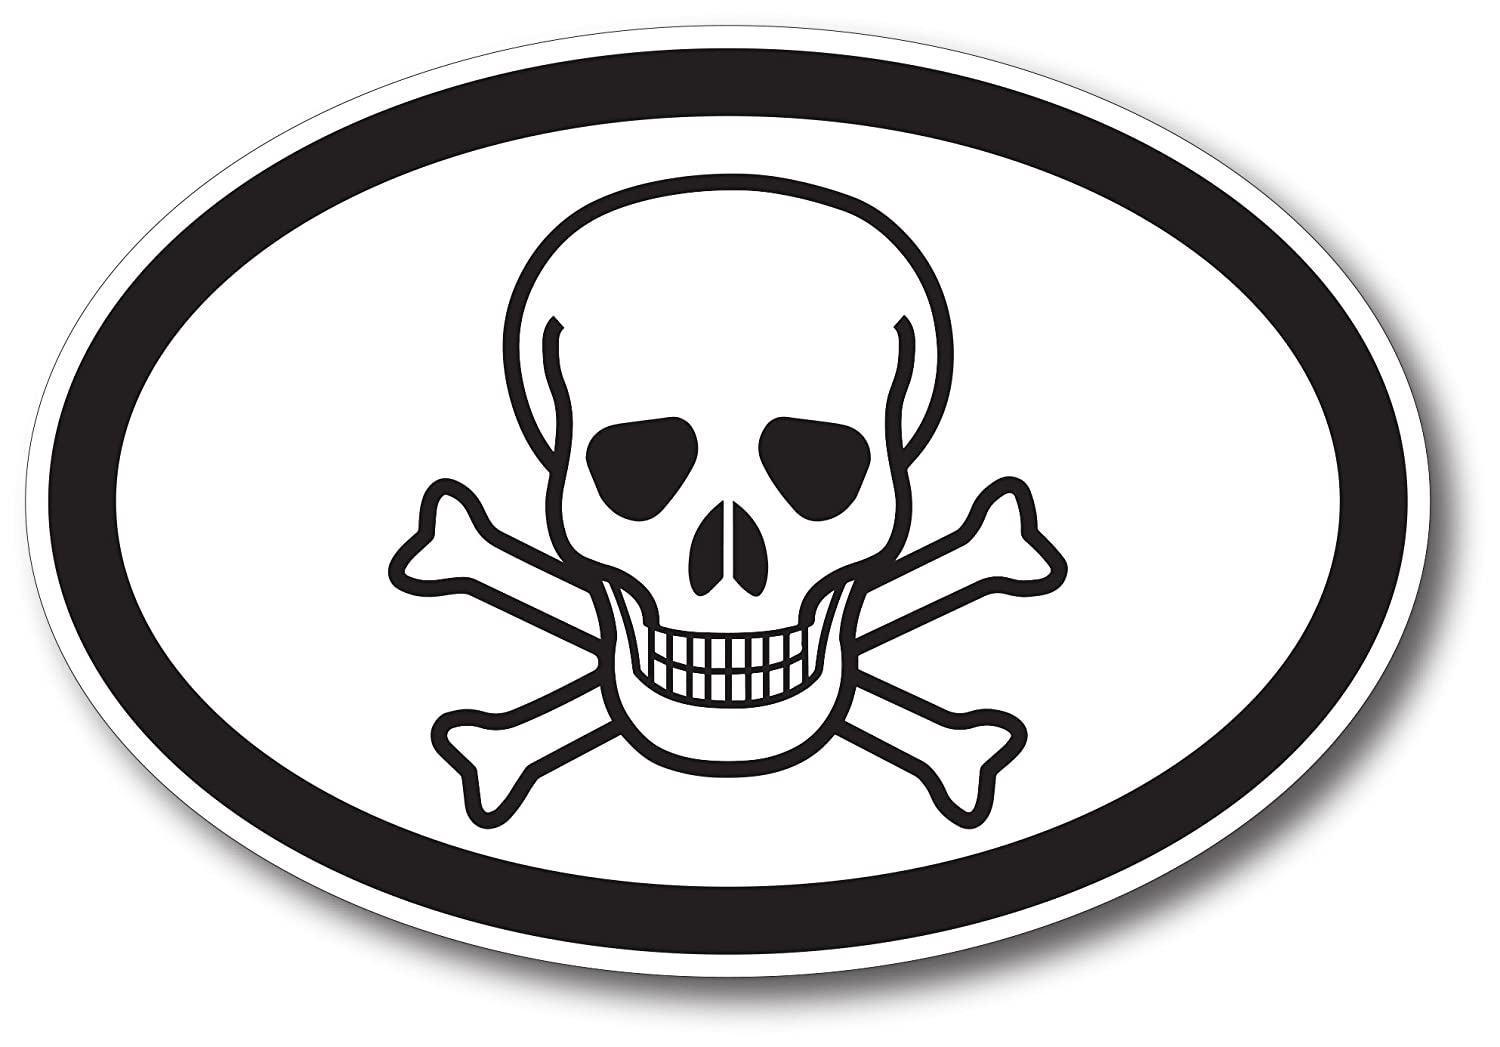 Skull and Crossbones Car Magnet Decal 4 x 6 Oval Heavy Duty for Car Truck SUV Waterproof